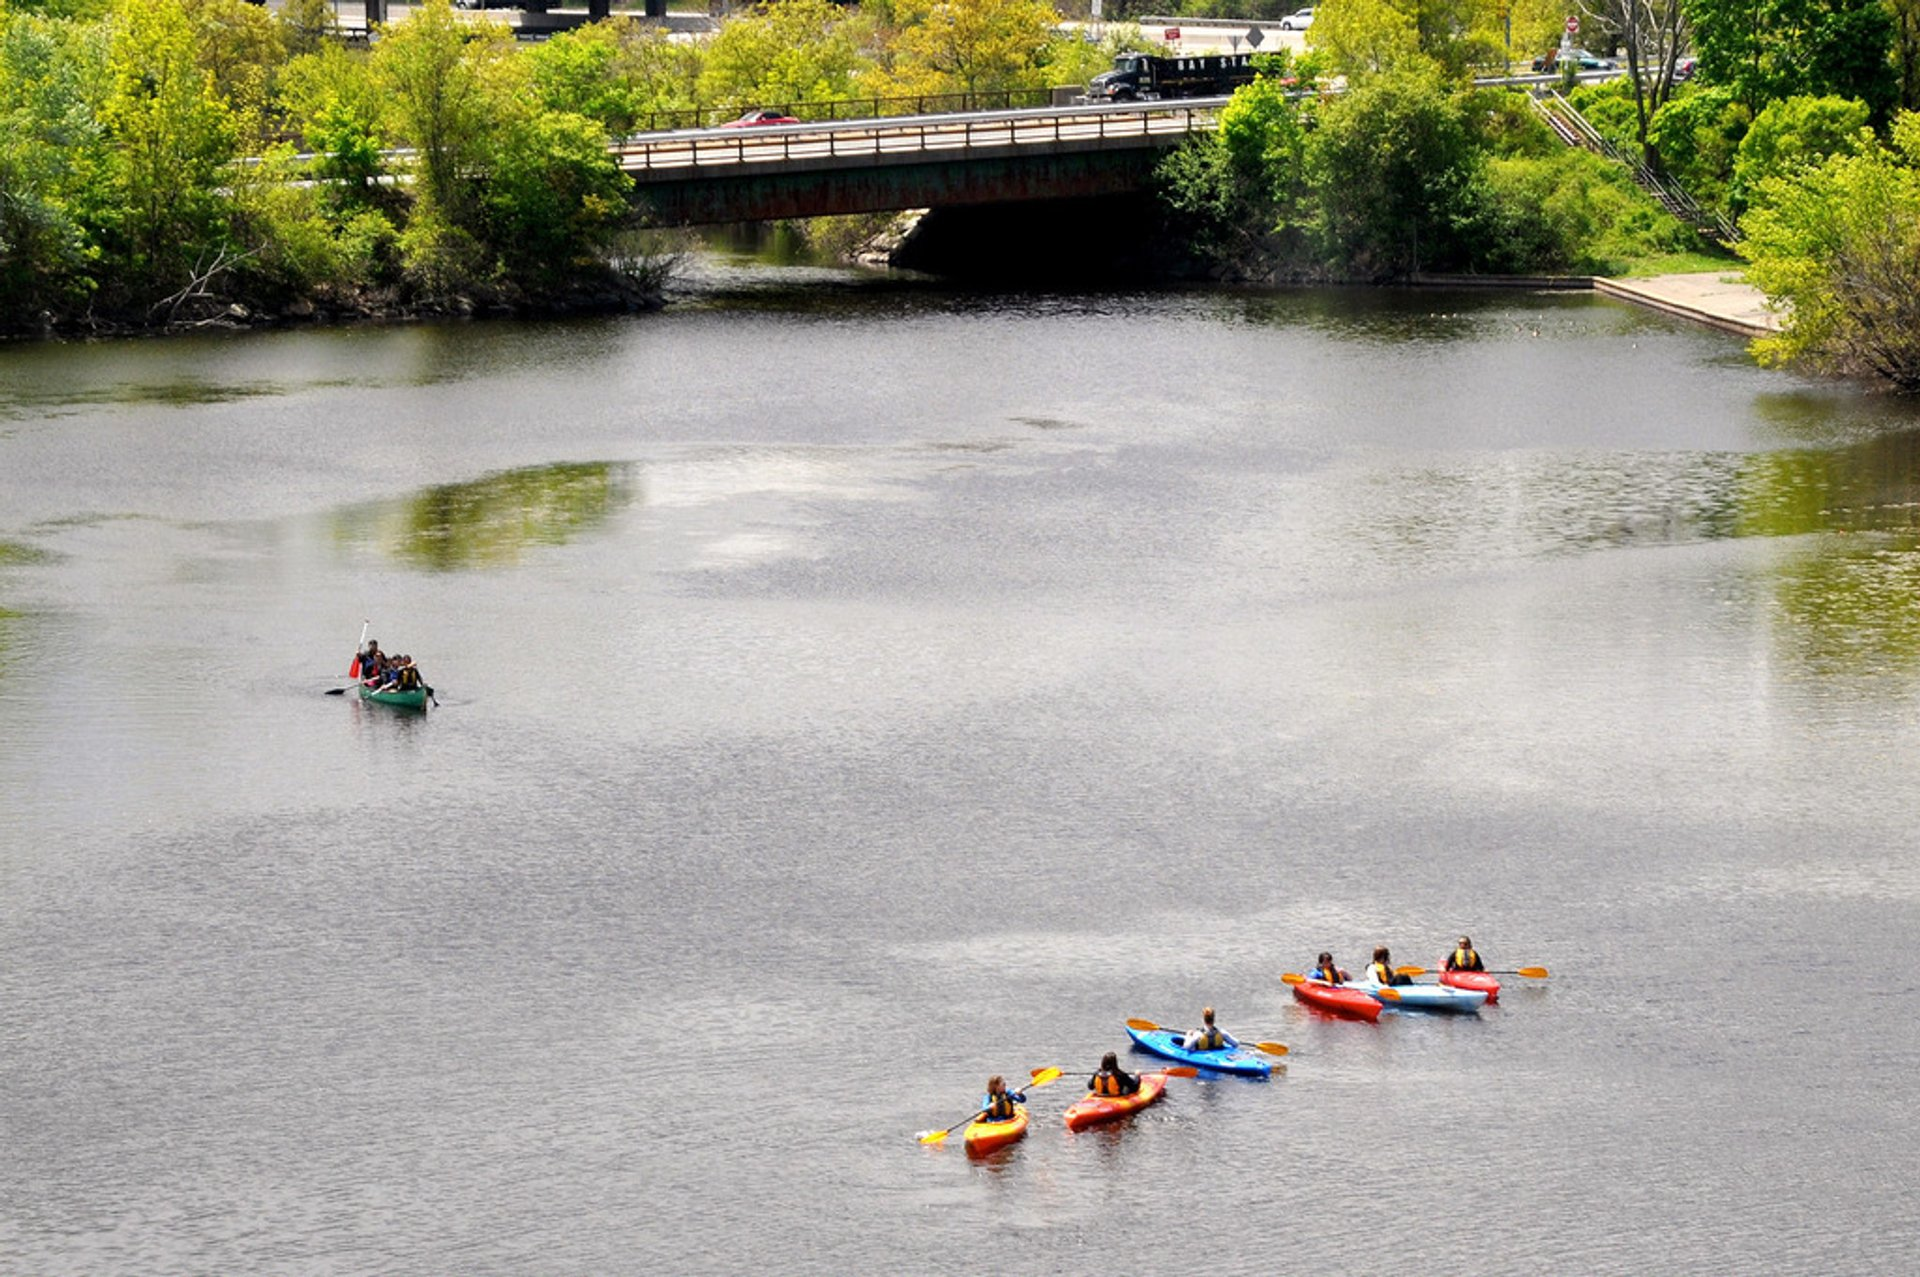 Charles River Kayaking in Boston - Best Season 2019